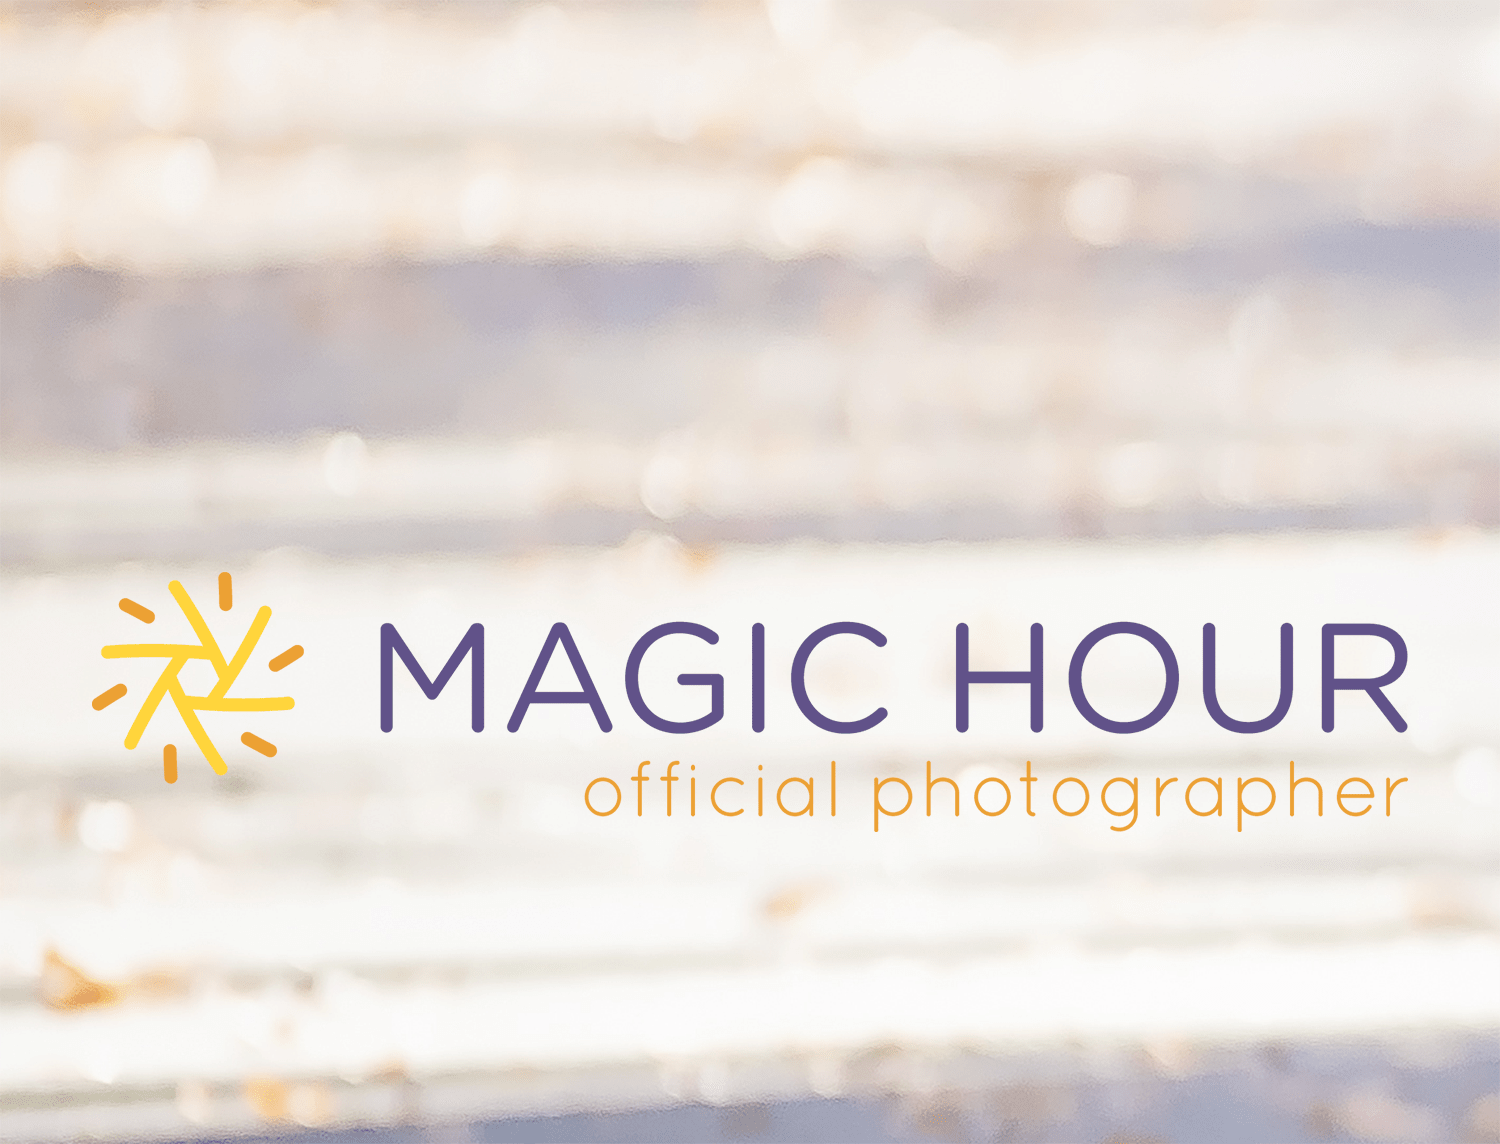 The Magic Hour Foundation Official Photographer